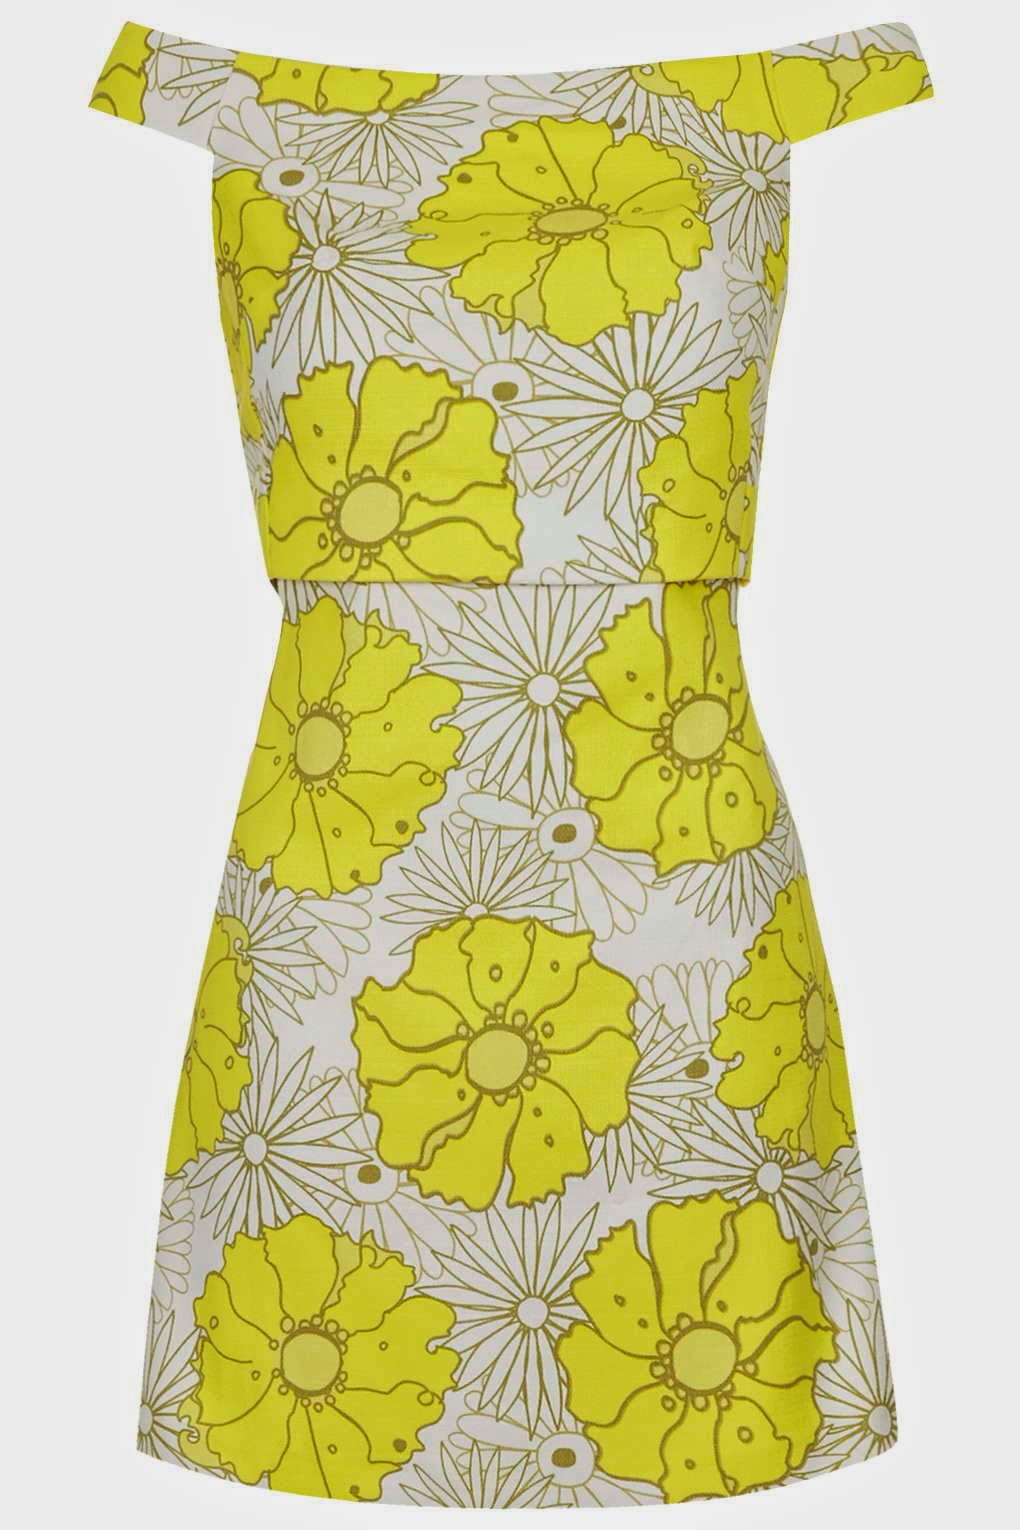 seventies style dress topshop, yellow flower off shoulder dress, yellow flower dress,